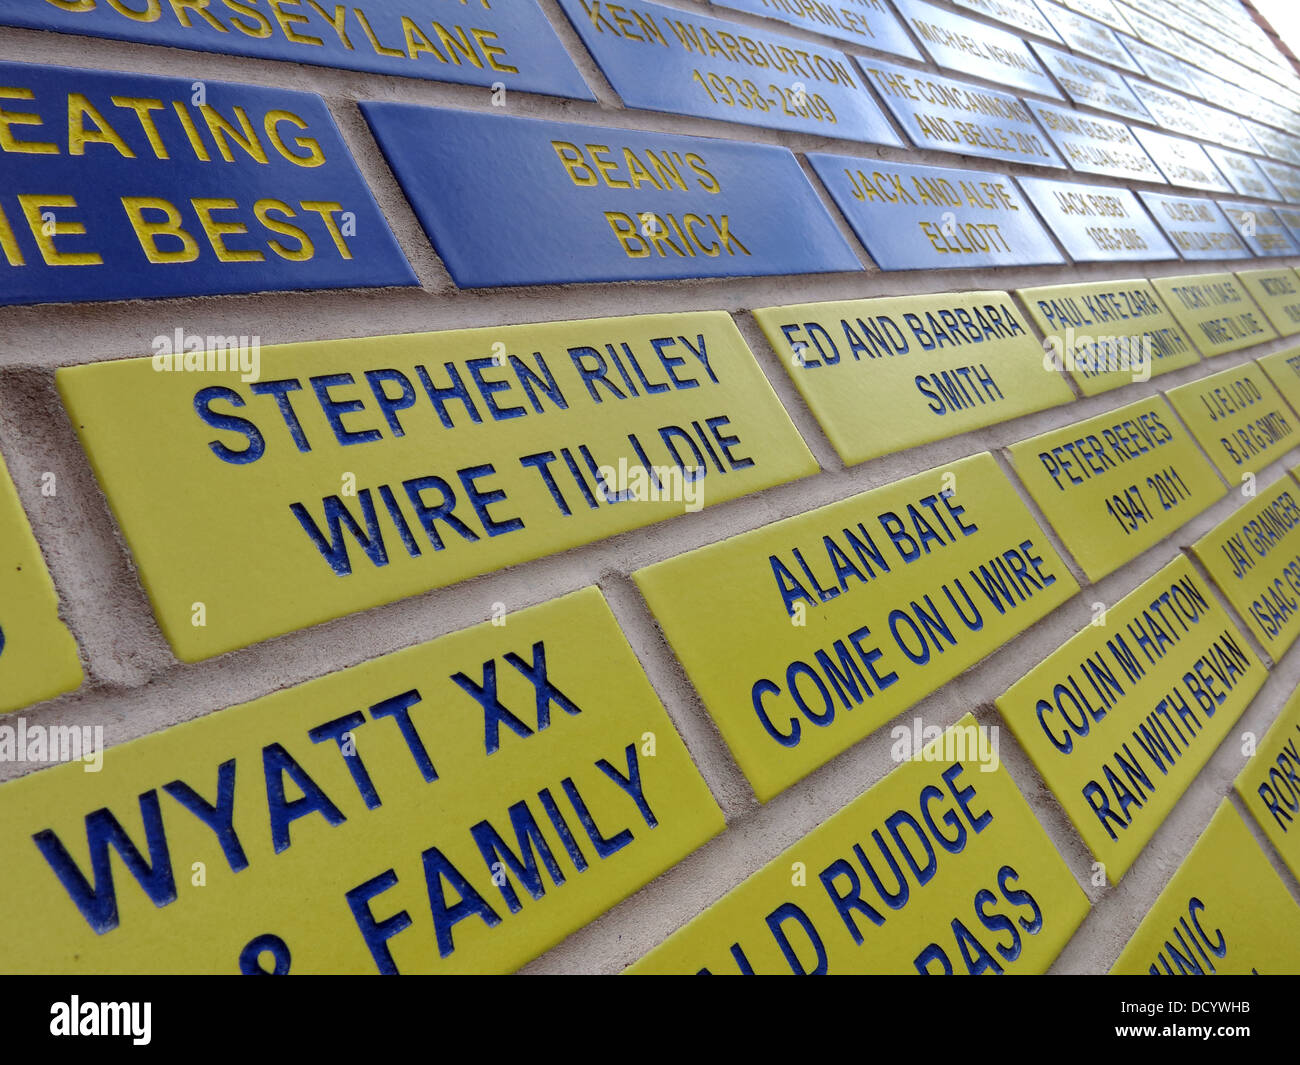 Bricks making up face of Brian Bevan from fans at Warrington Wolves Rugby Stadium, Cheshire England UK - Stock Image